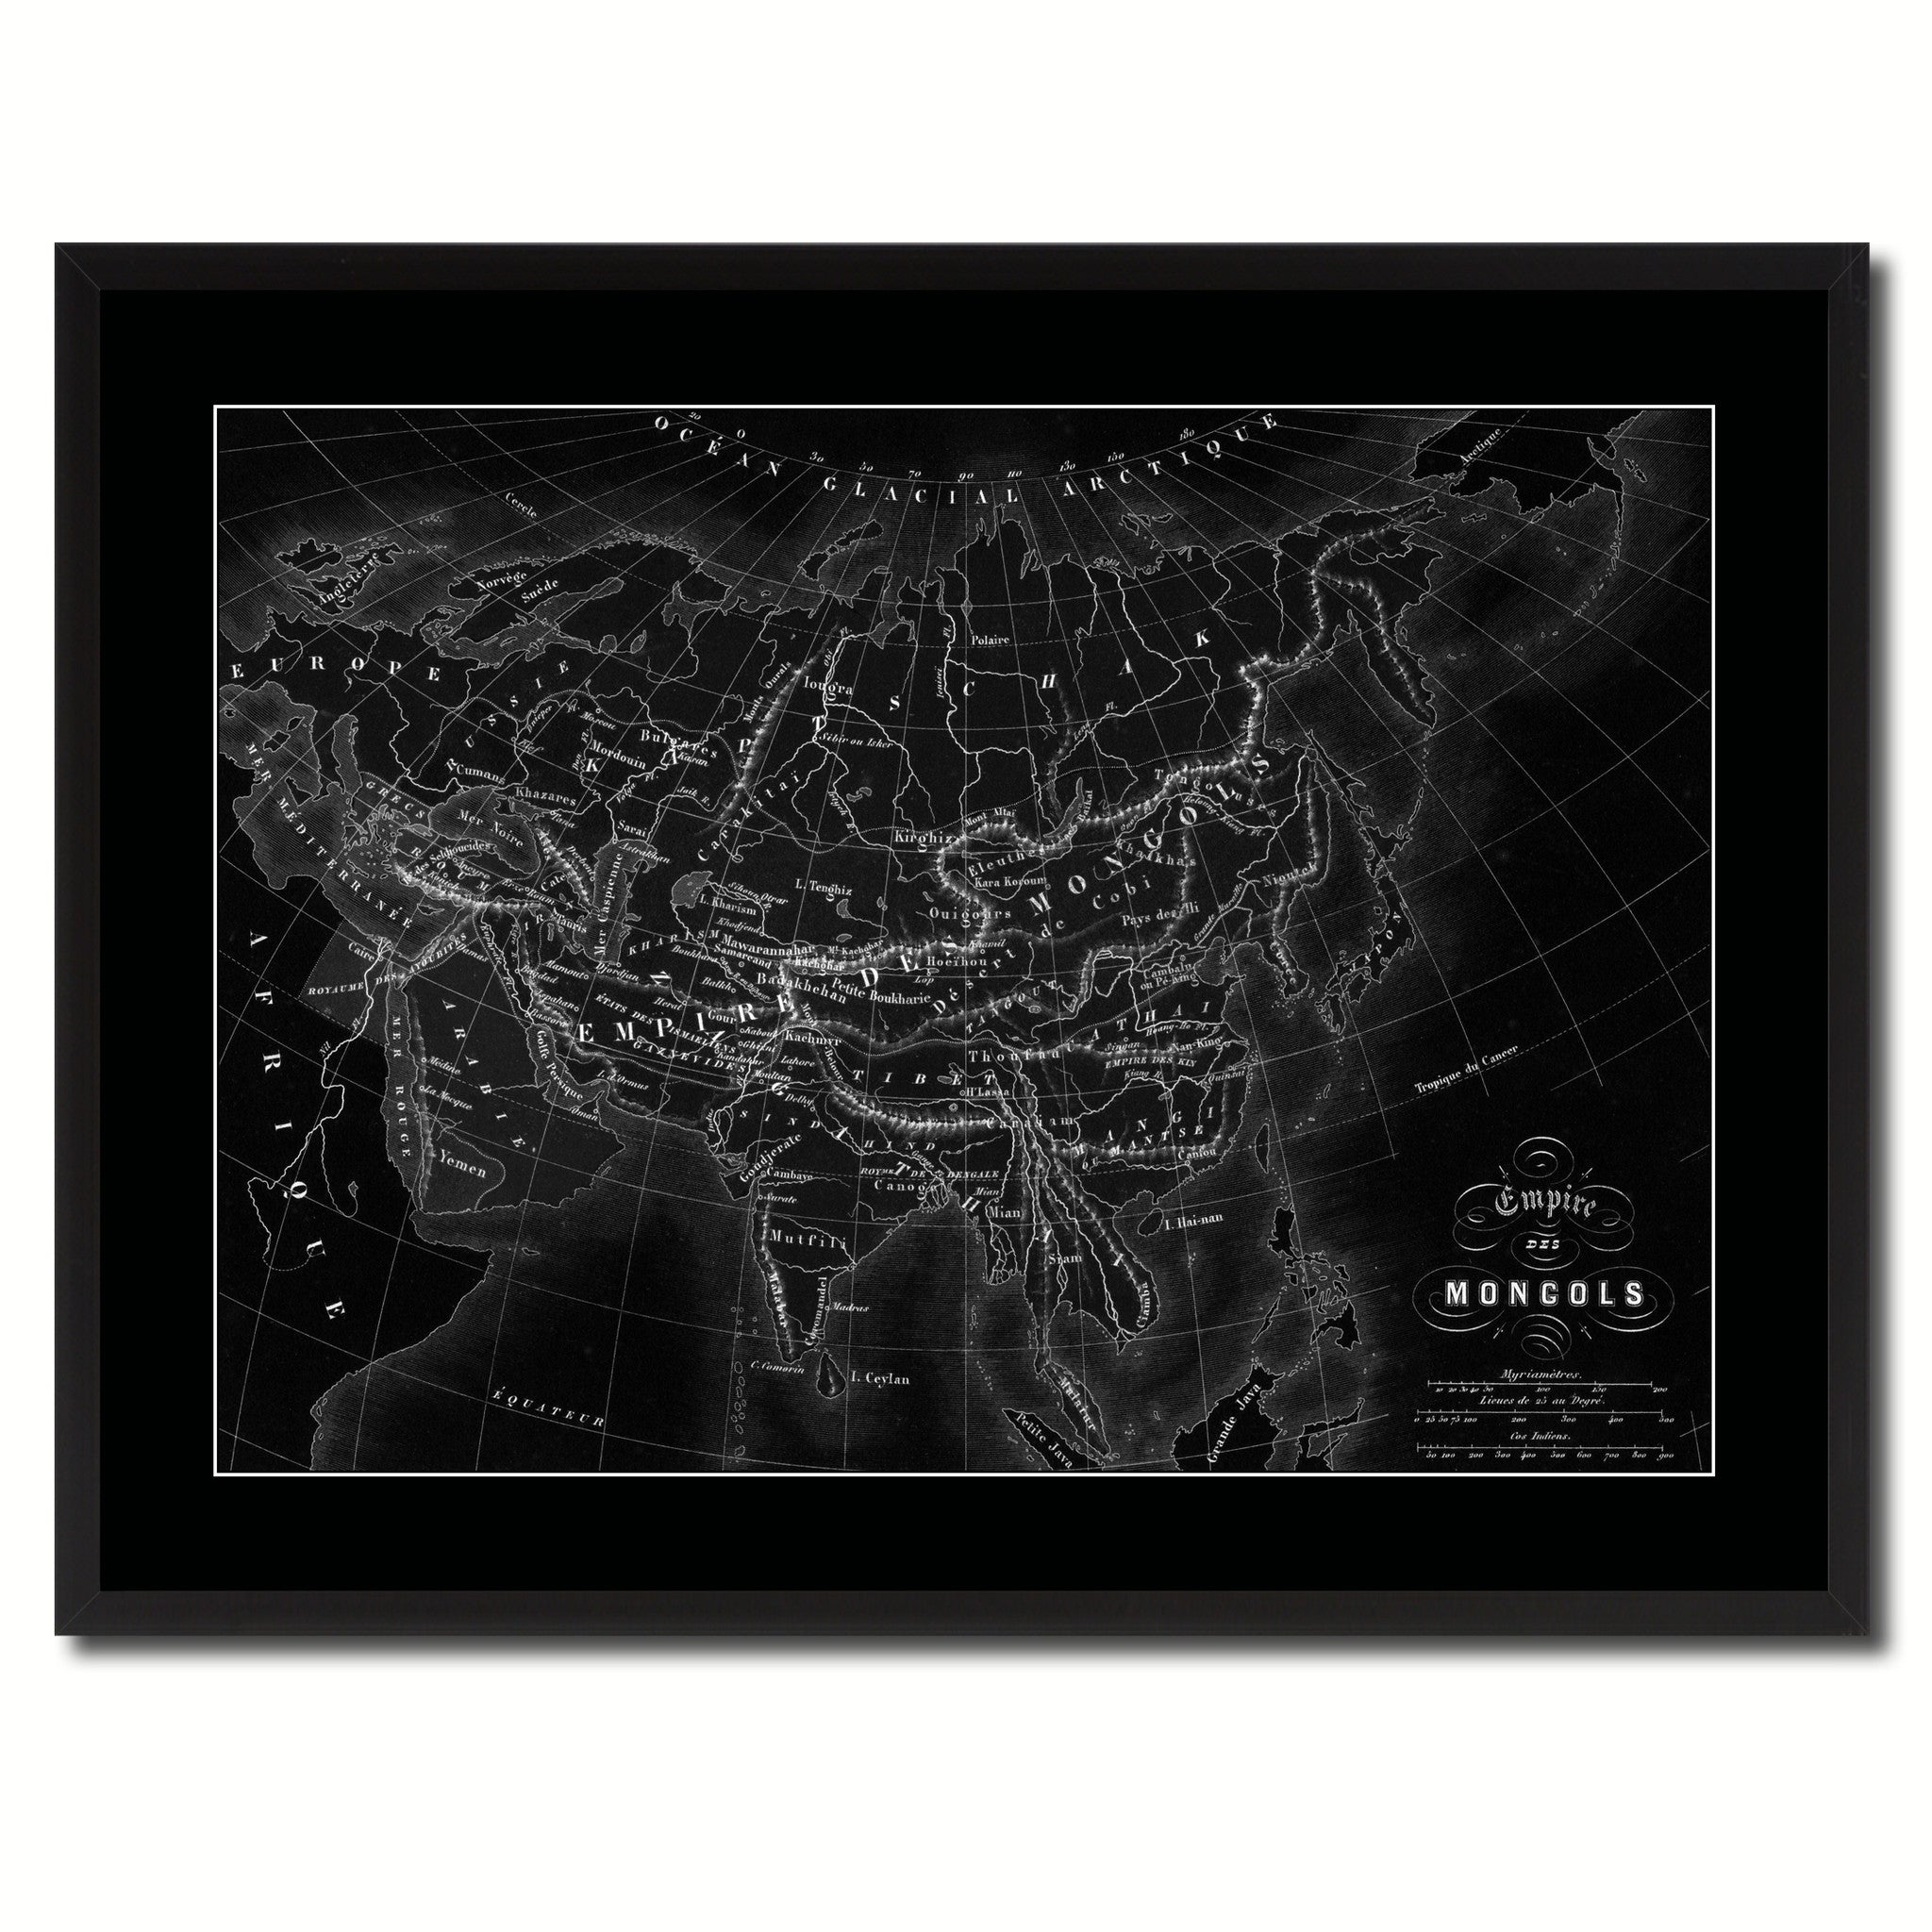 Mongolian Empire Asia Vintage Monochrome Map Canvas Print, Gifts Picture Frames Home Decor Wall Art